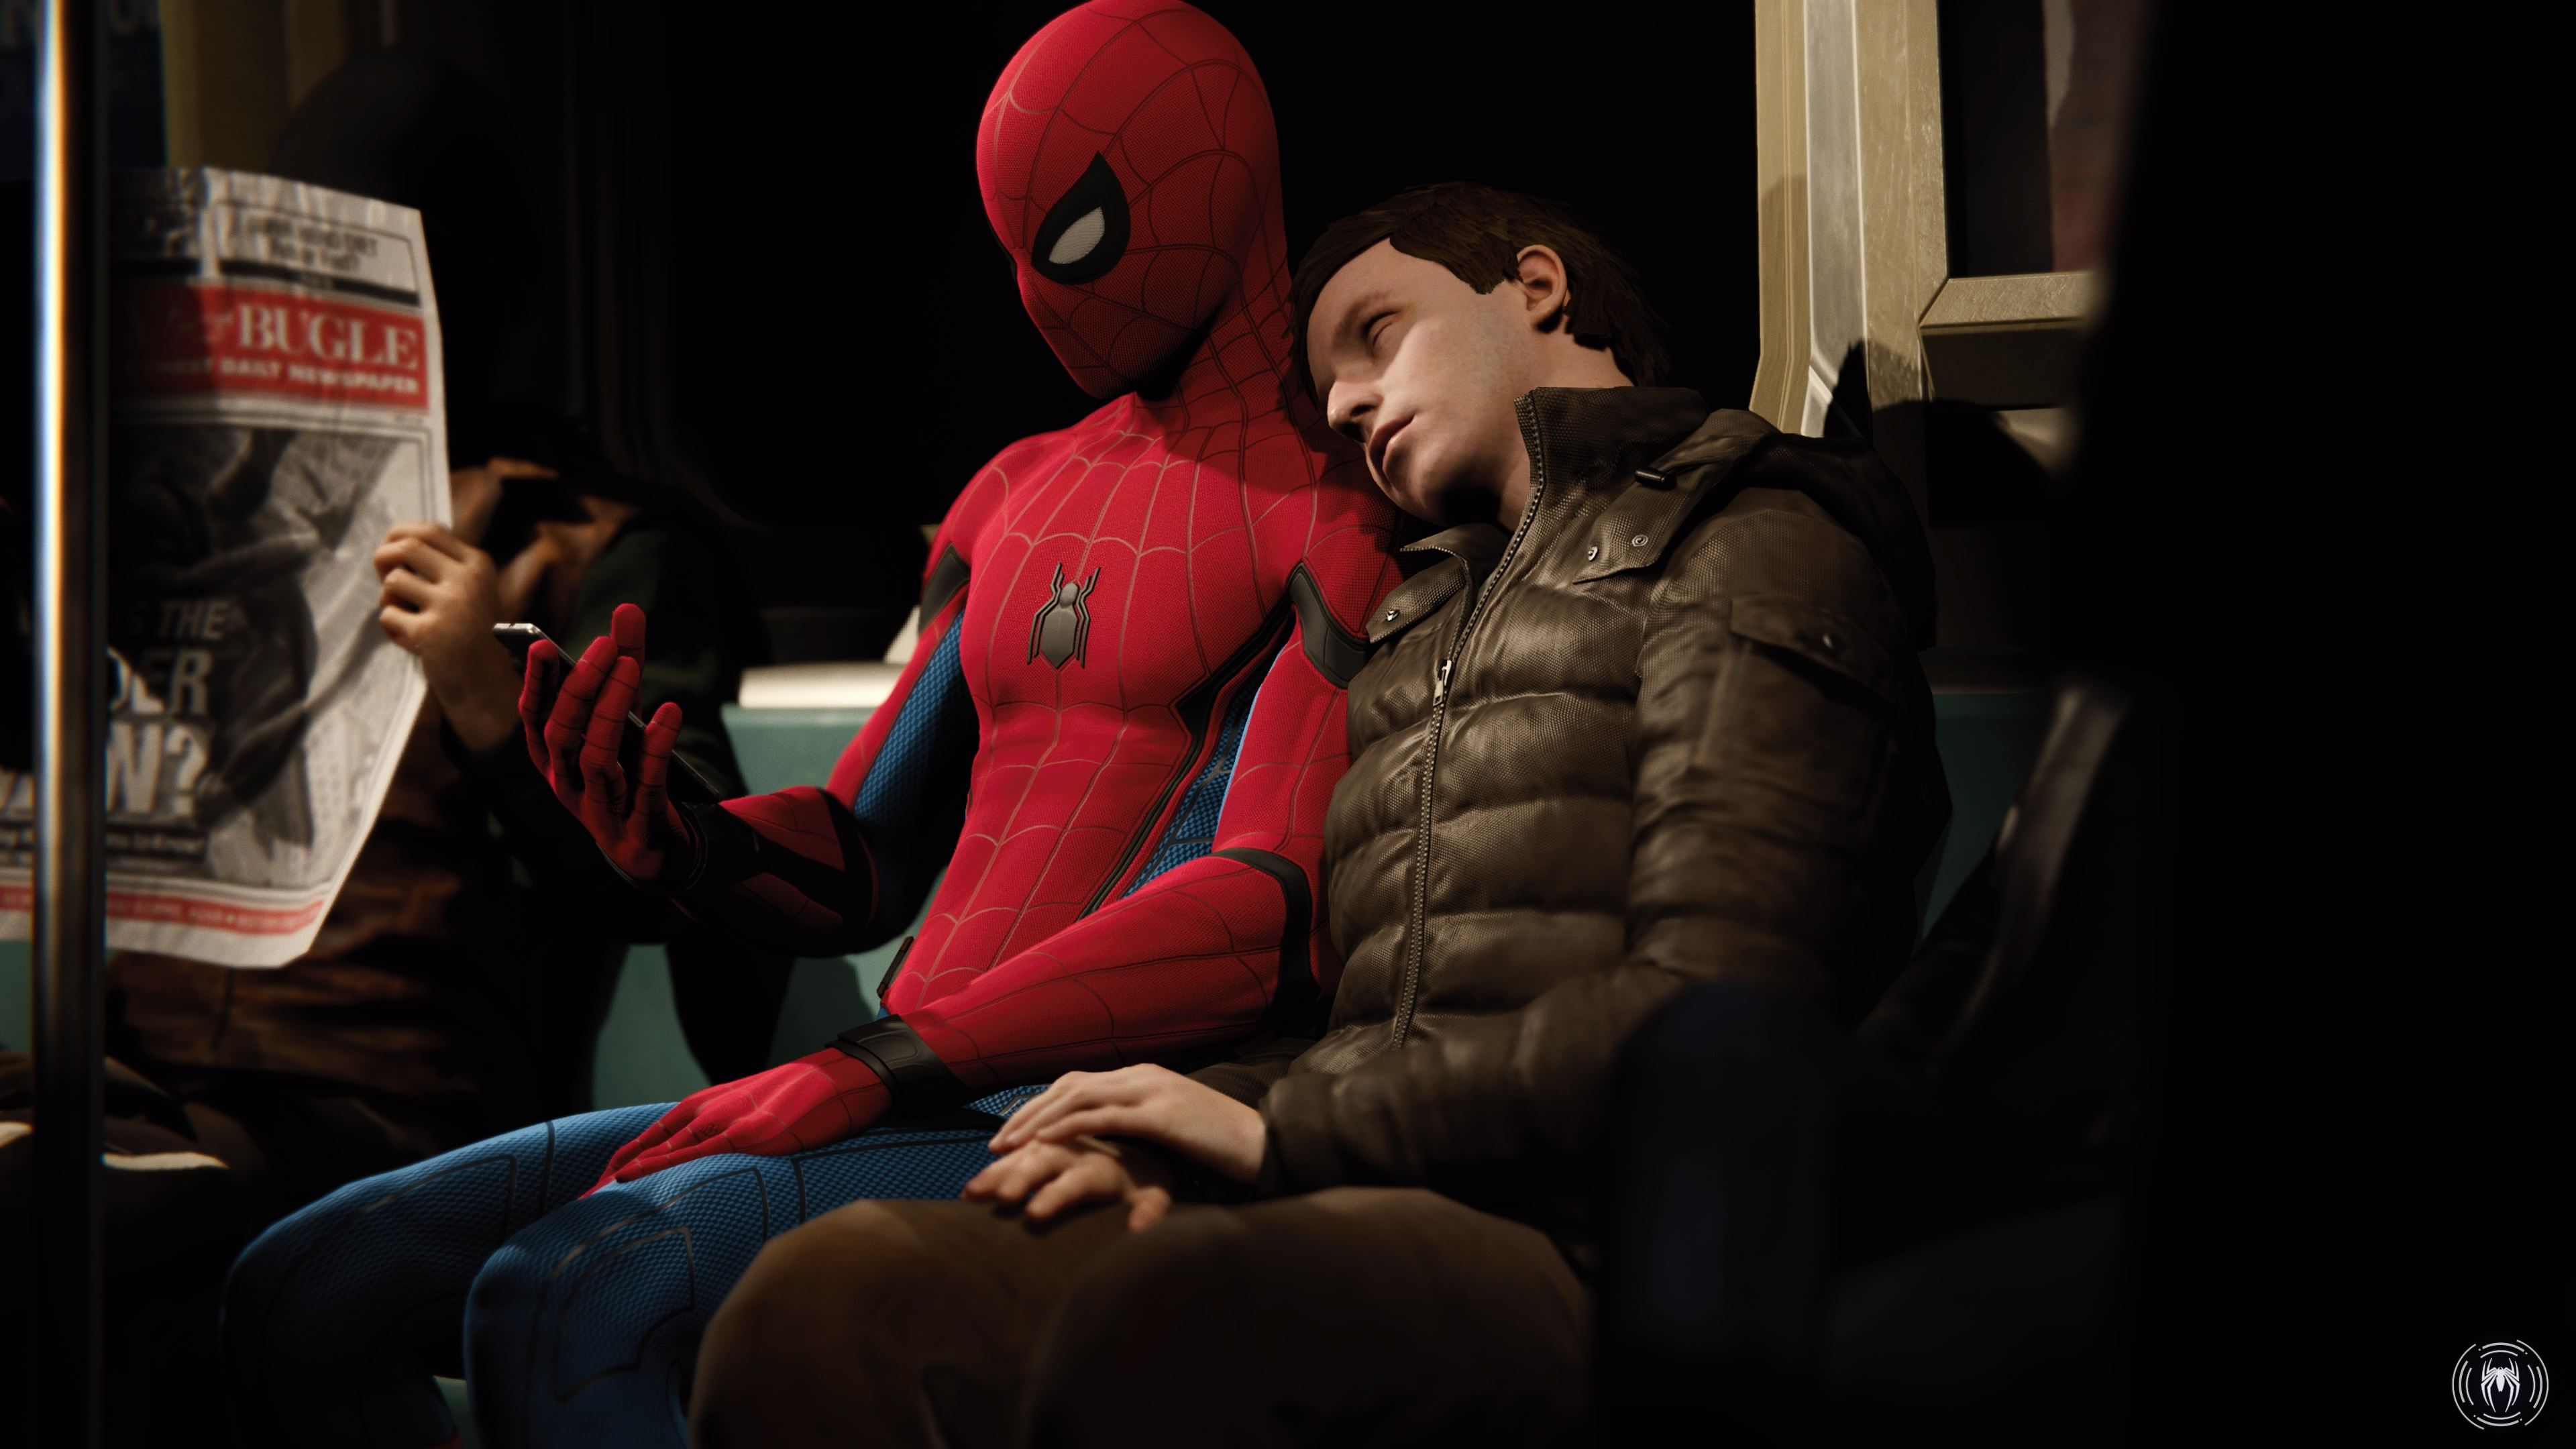 The joy of being a passenger in video games